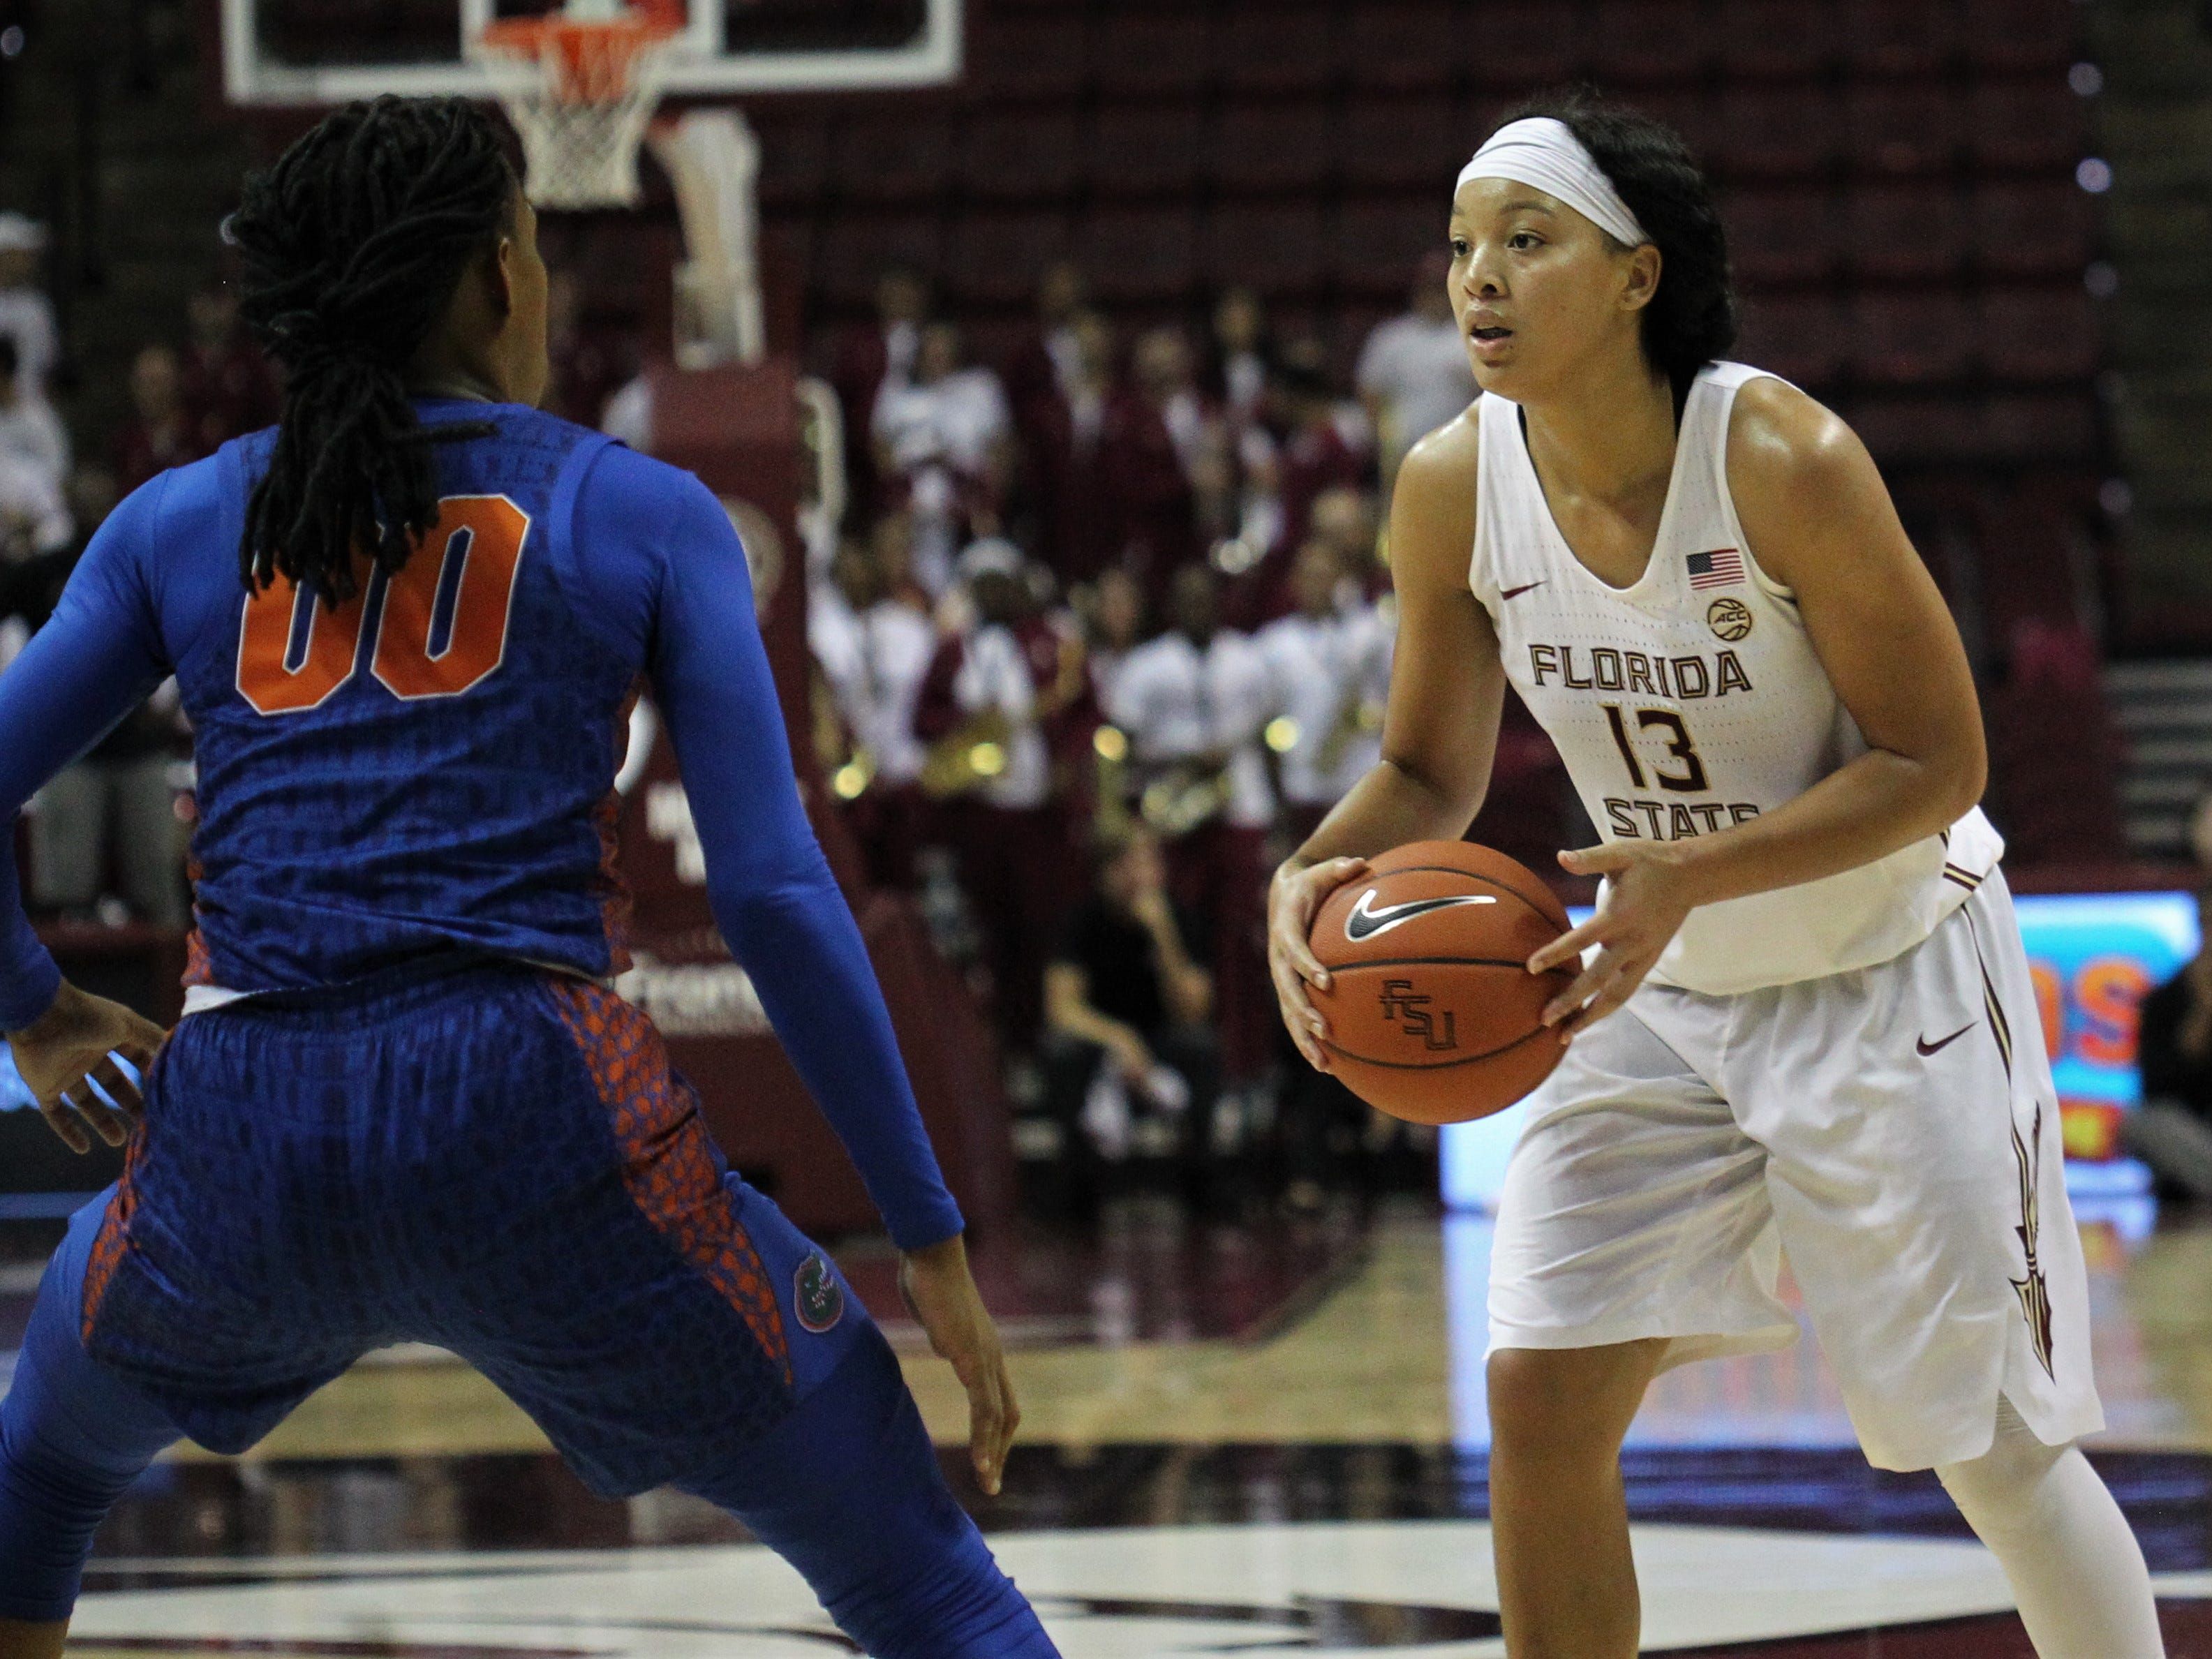 Florida State's Nausia Woolfolk sizes up UF's defense during the second half of the Seminoles' game against Florida at the Tucker Civic Center on Nov. 11, 2018.